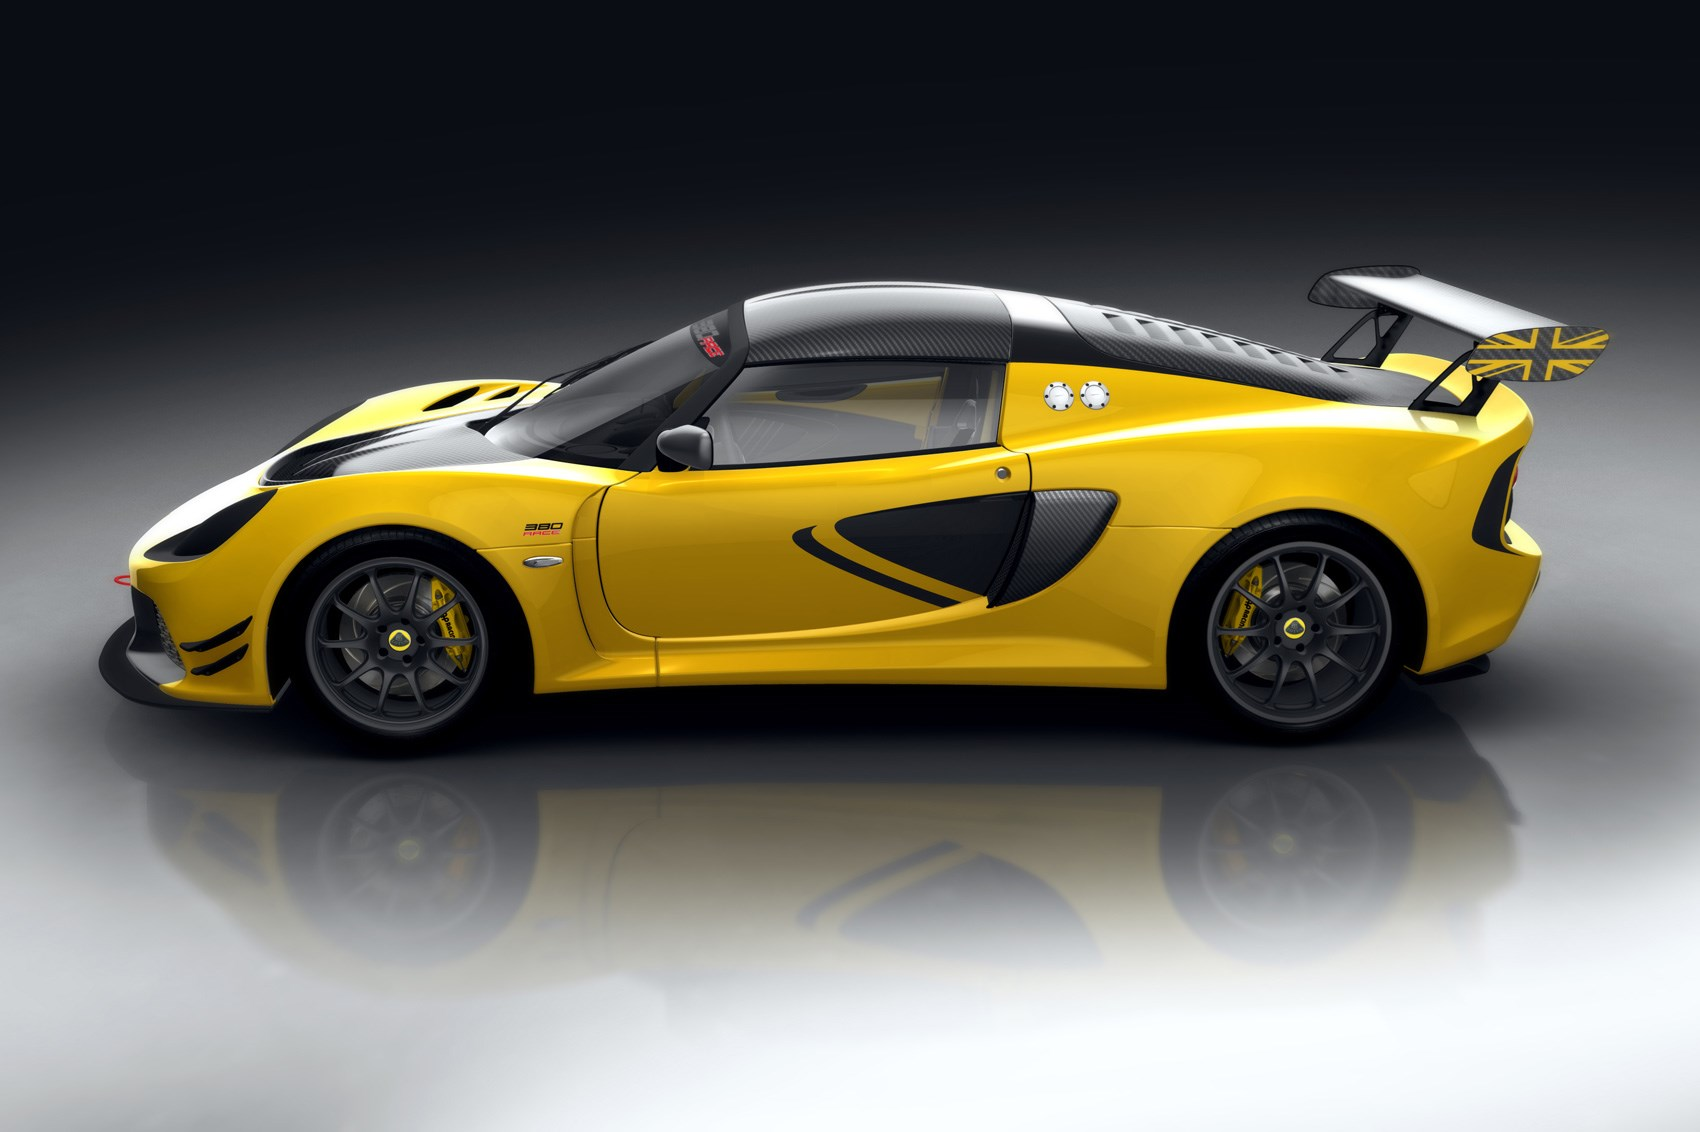 https://car-images.bauersecure.com/pagefiles/69157/lotus_exige_race_380_4.jpg